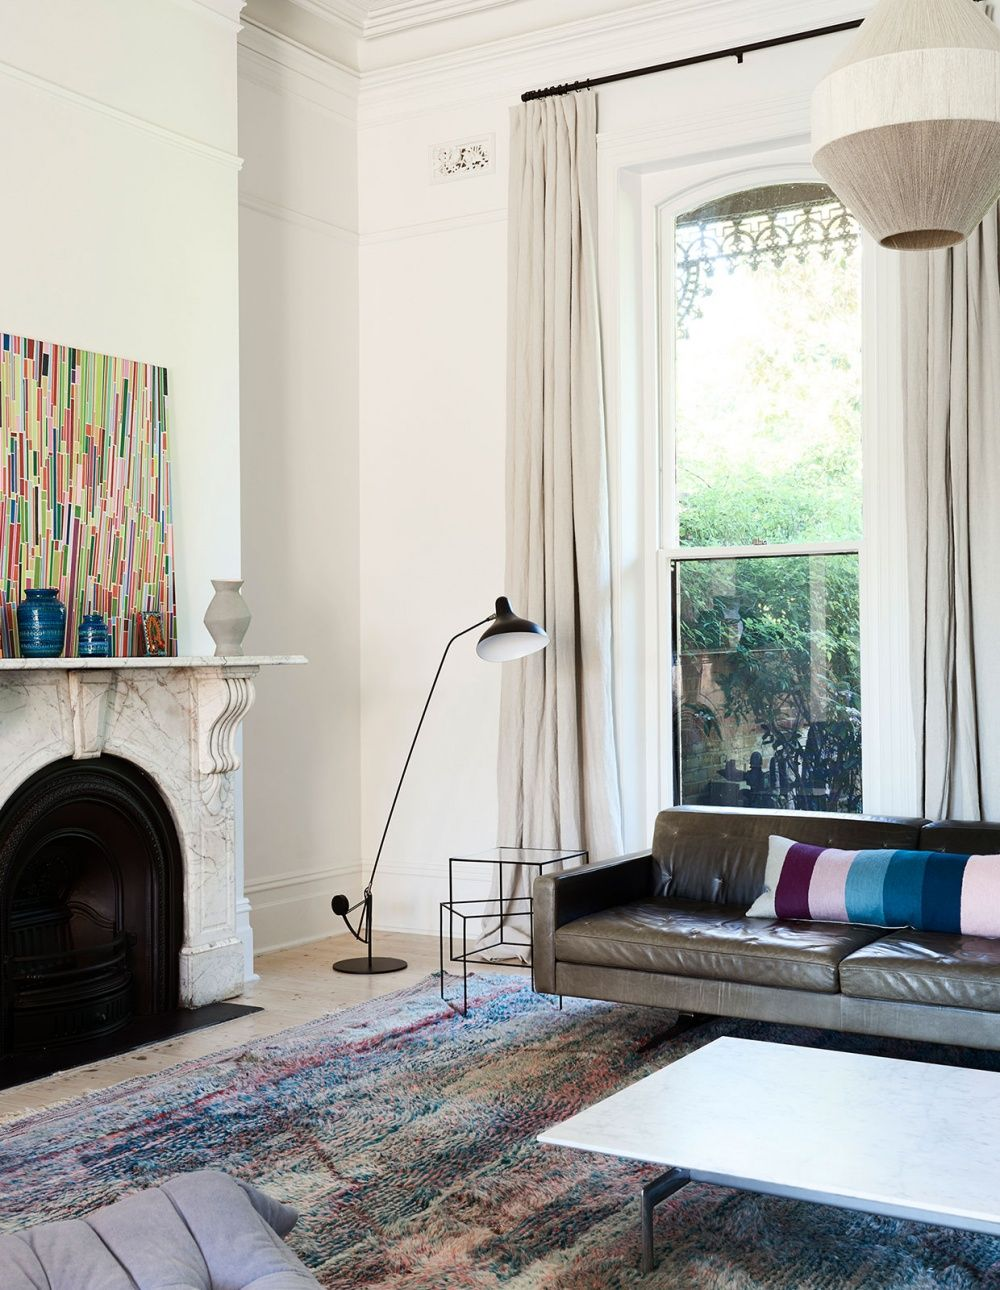 James tutton   victorian mansionette in coburg built photo eve wilson production lucy feagins the design files also top ten homes of artisan home rh pinterest